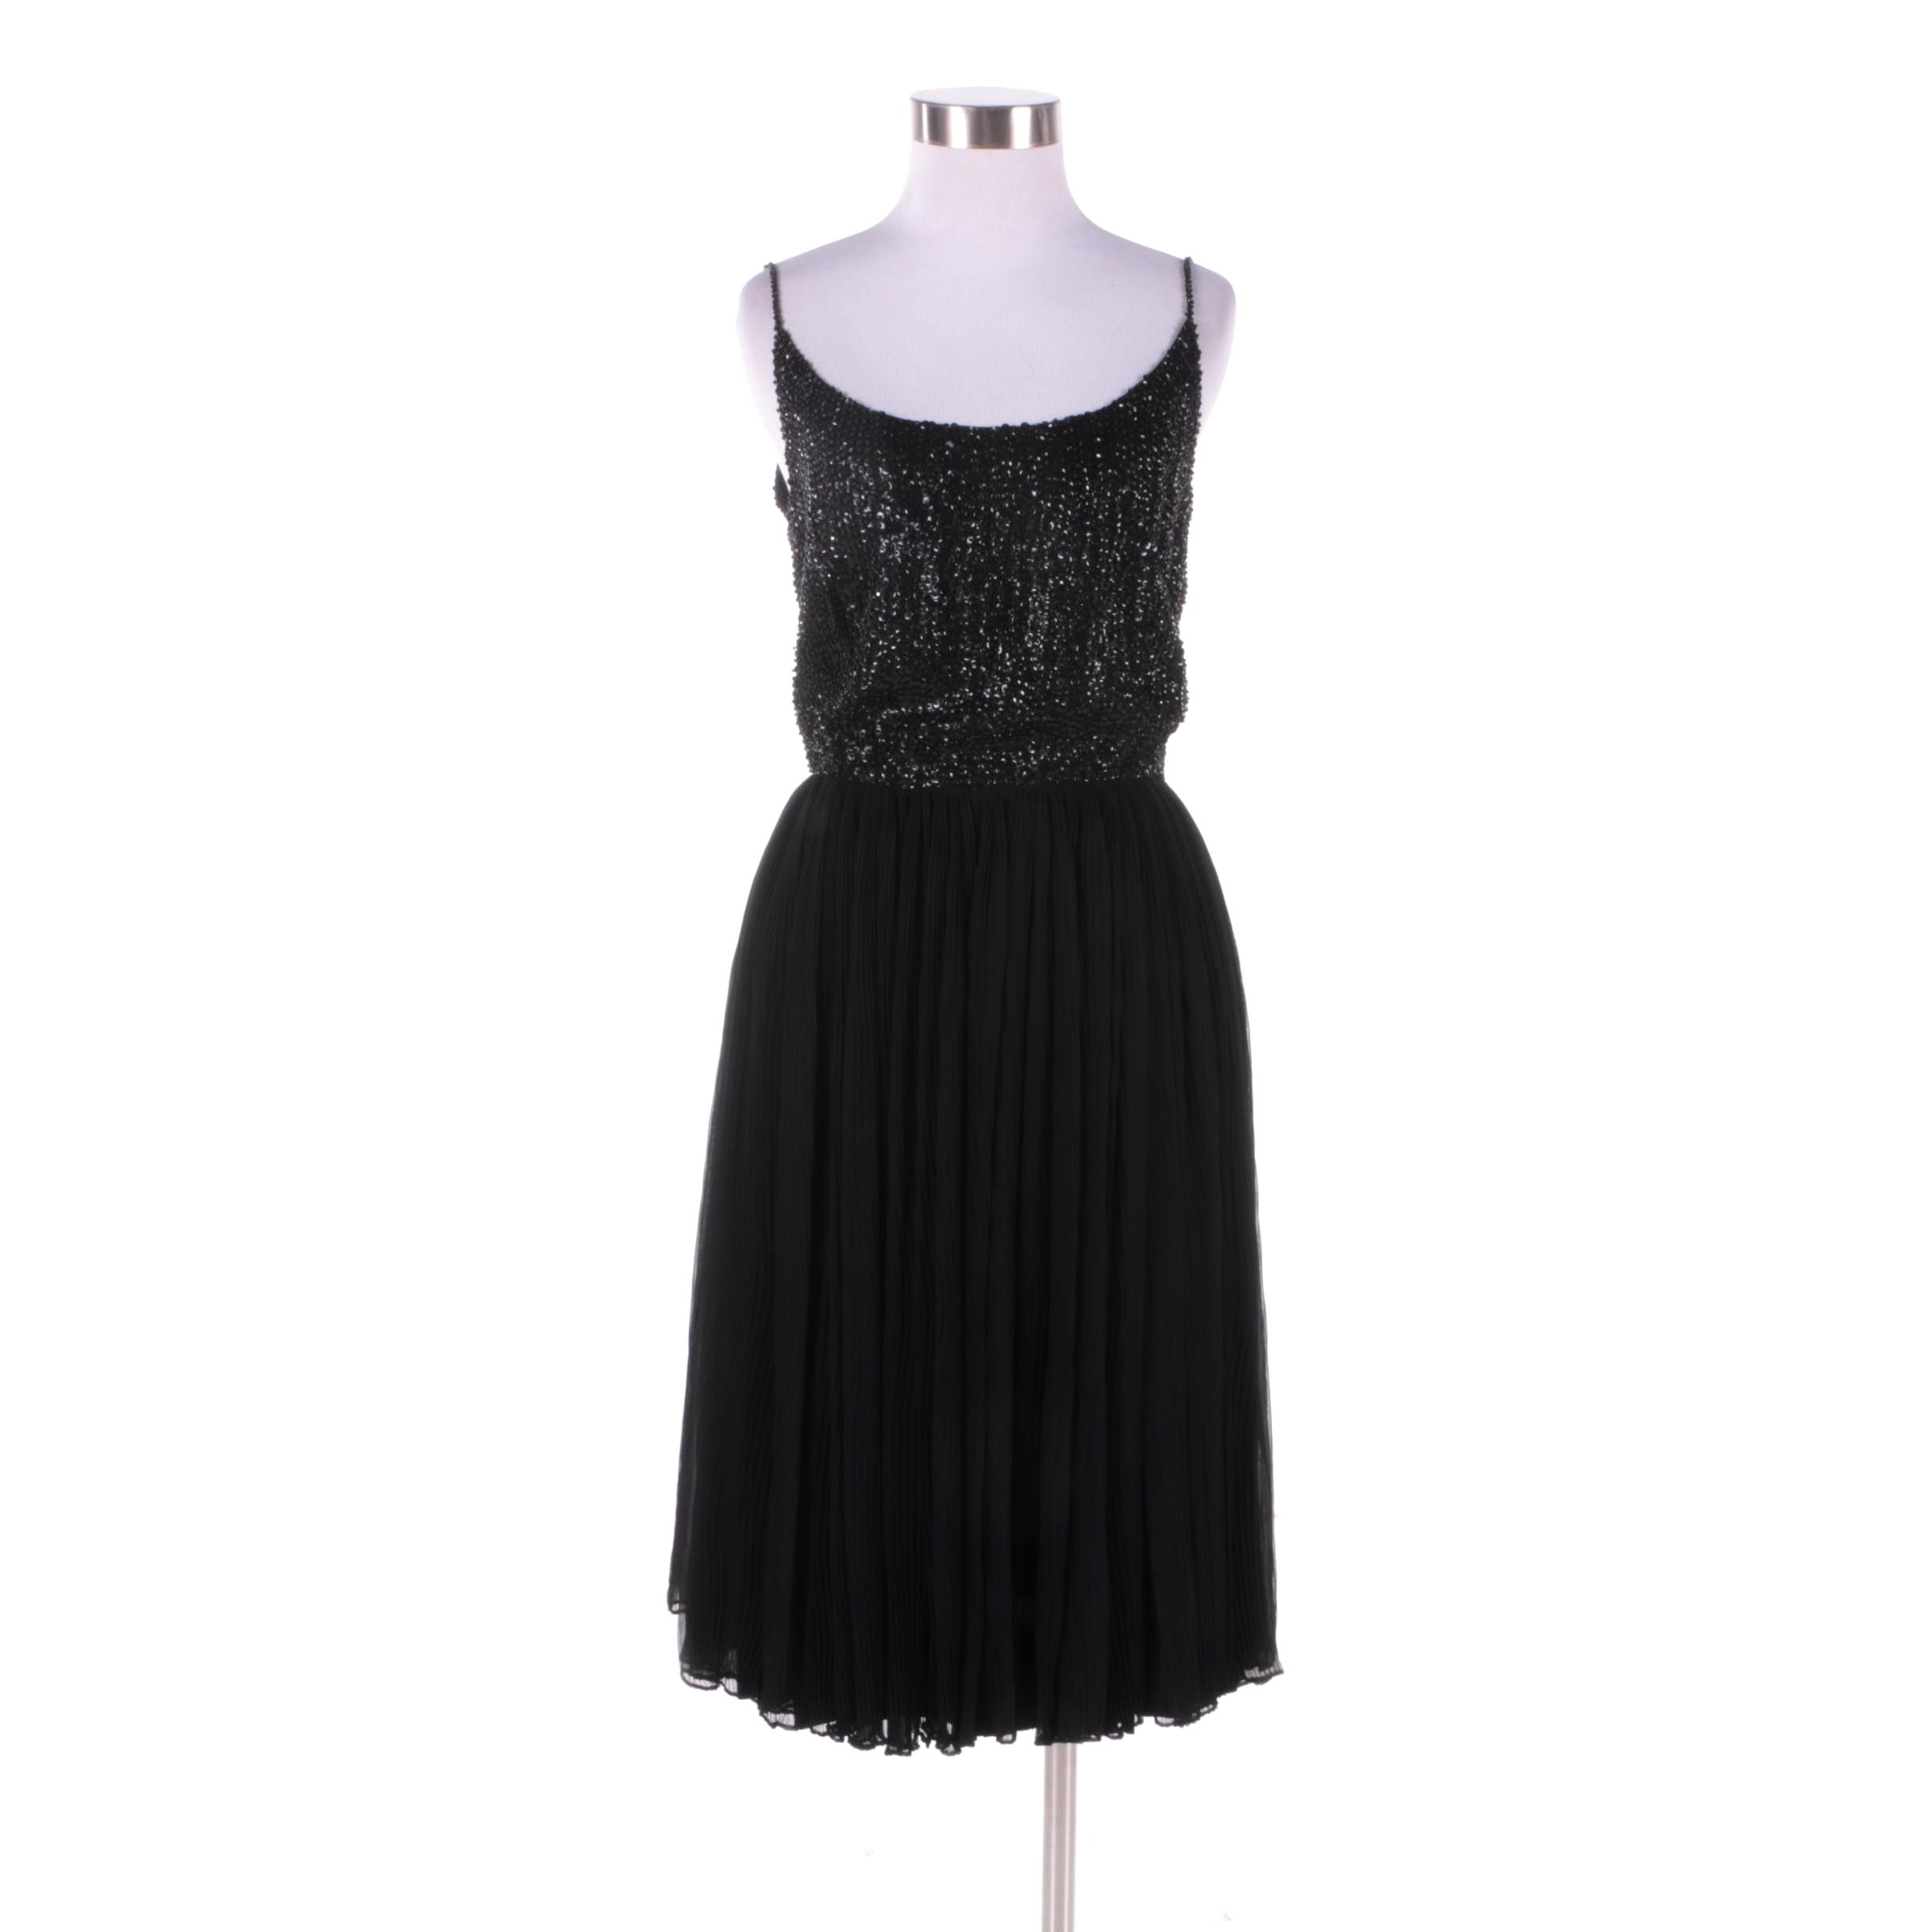 1960s Vintage Mr Mort Black Chiffon Sleeveless Cocktail Dress with Sequins